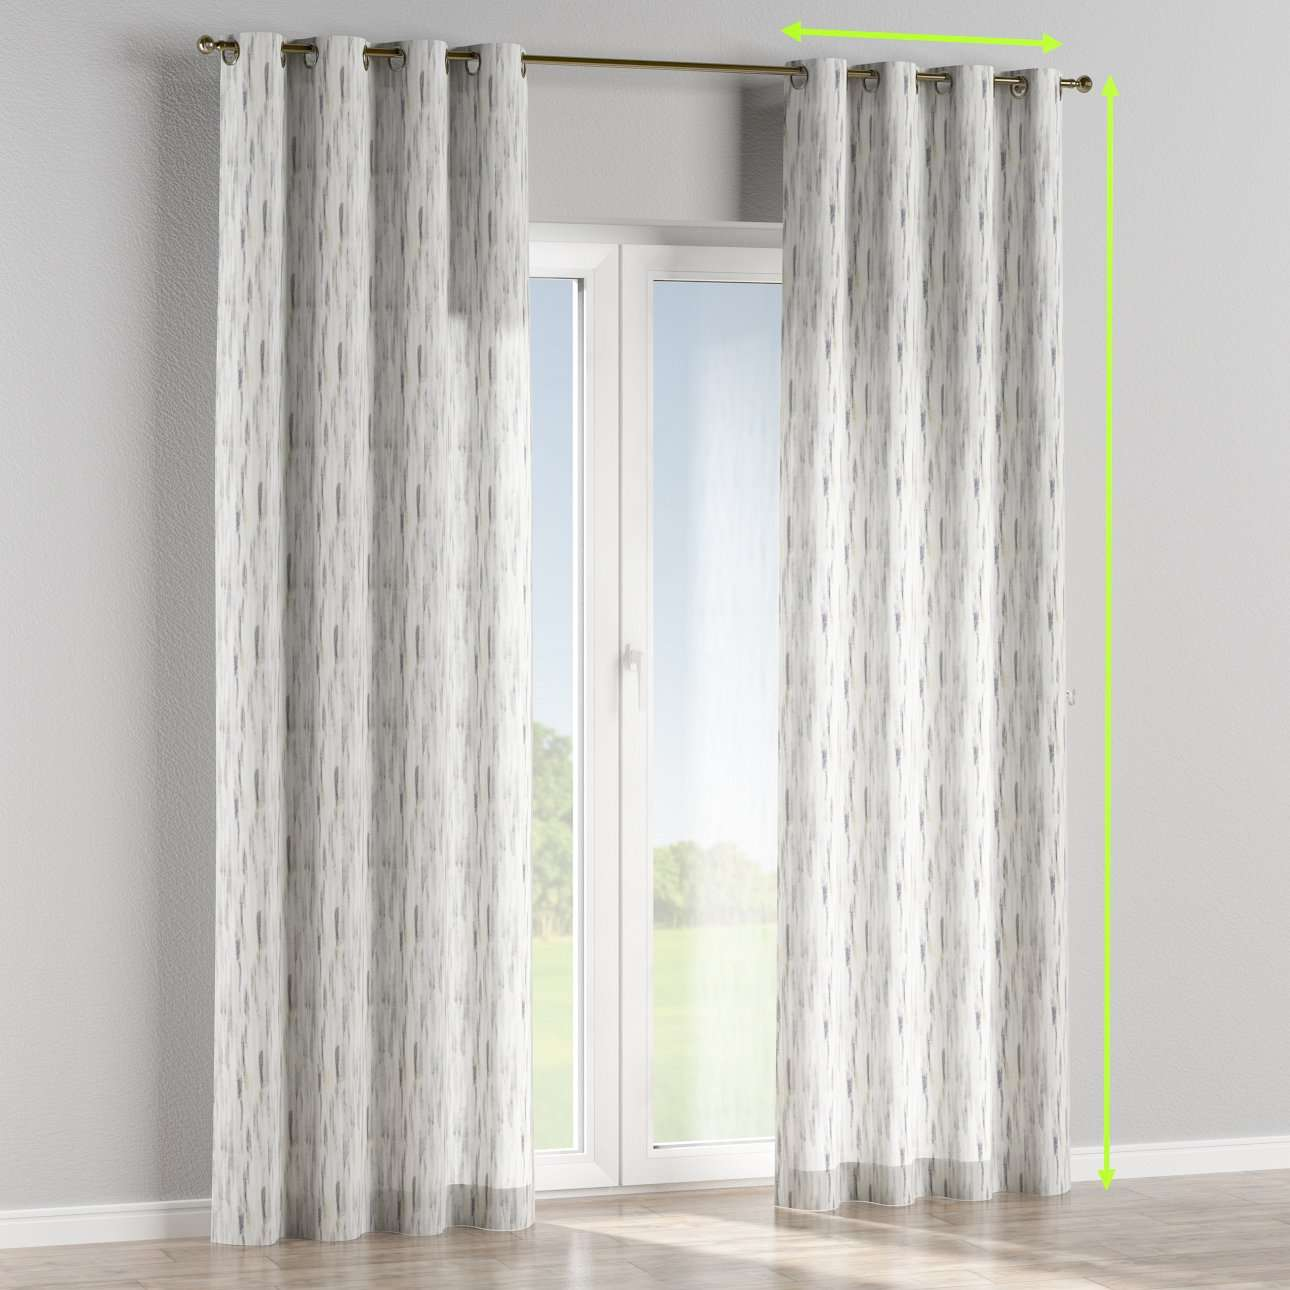 Eyelet curtains in collection Aquarelle, fabric: 140-66